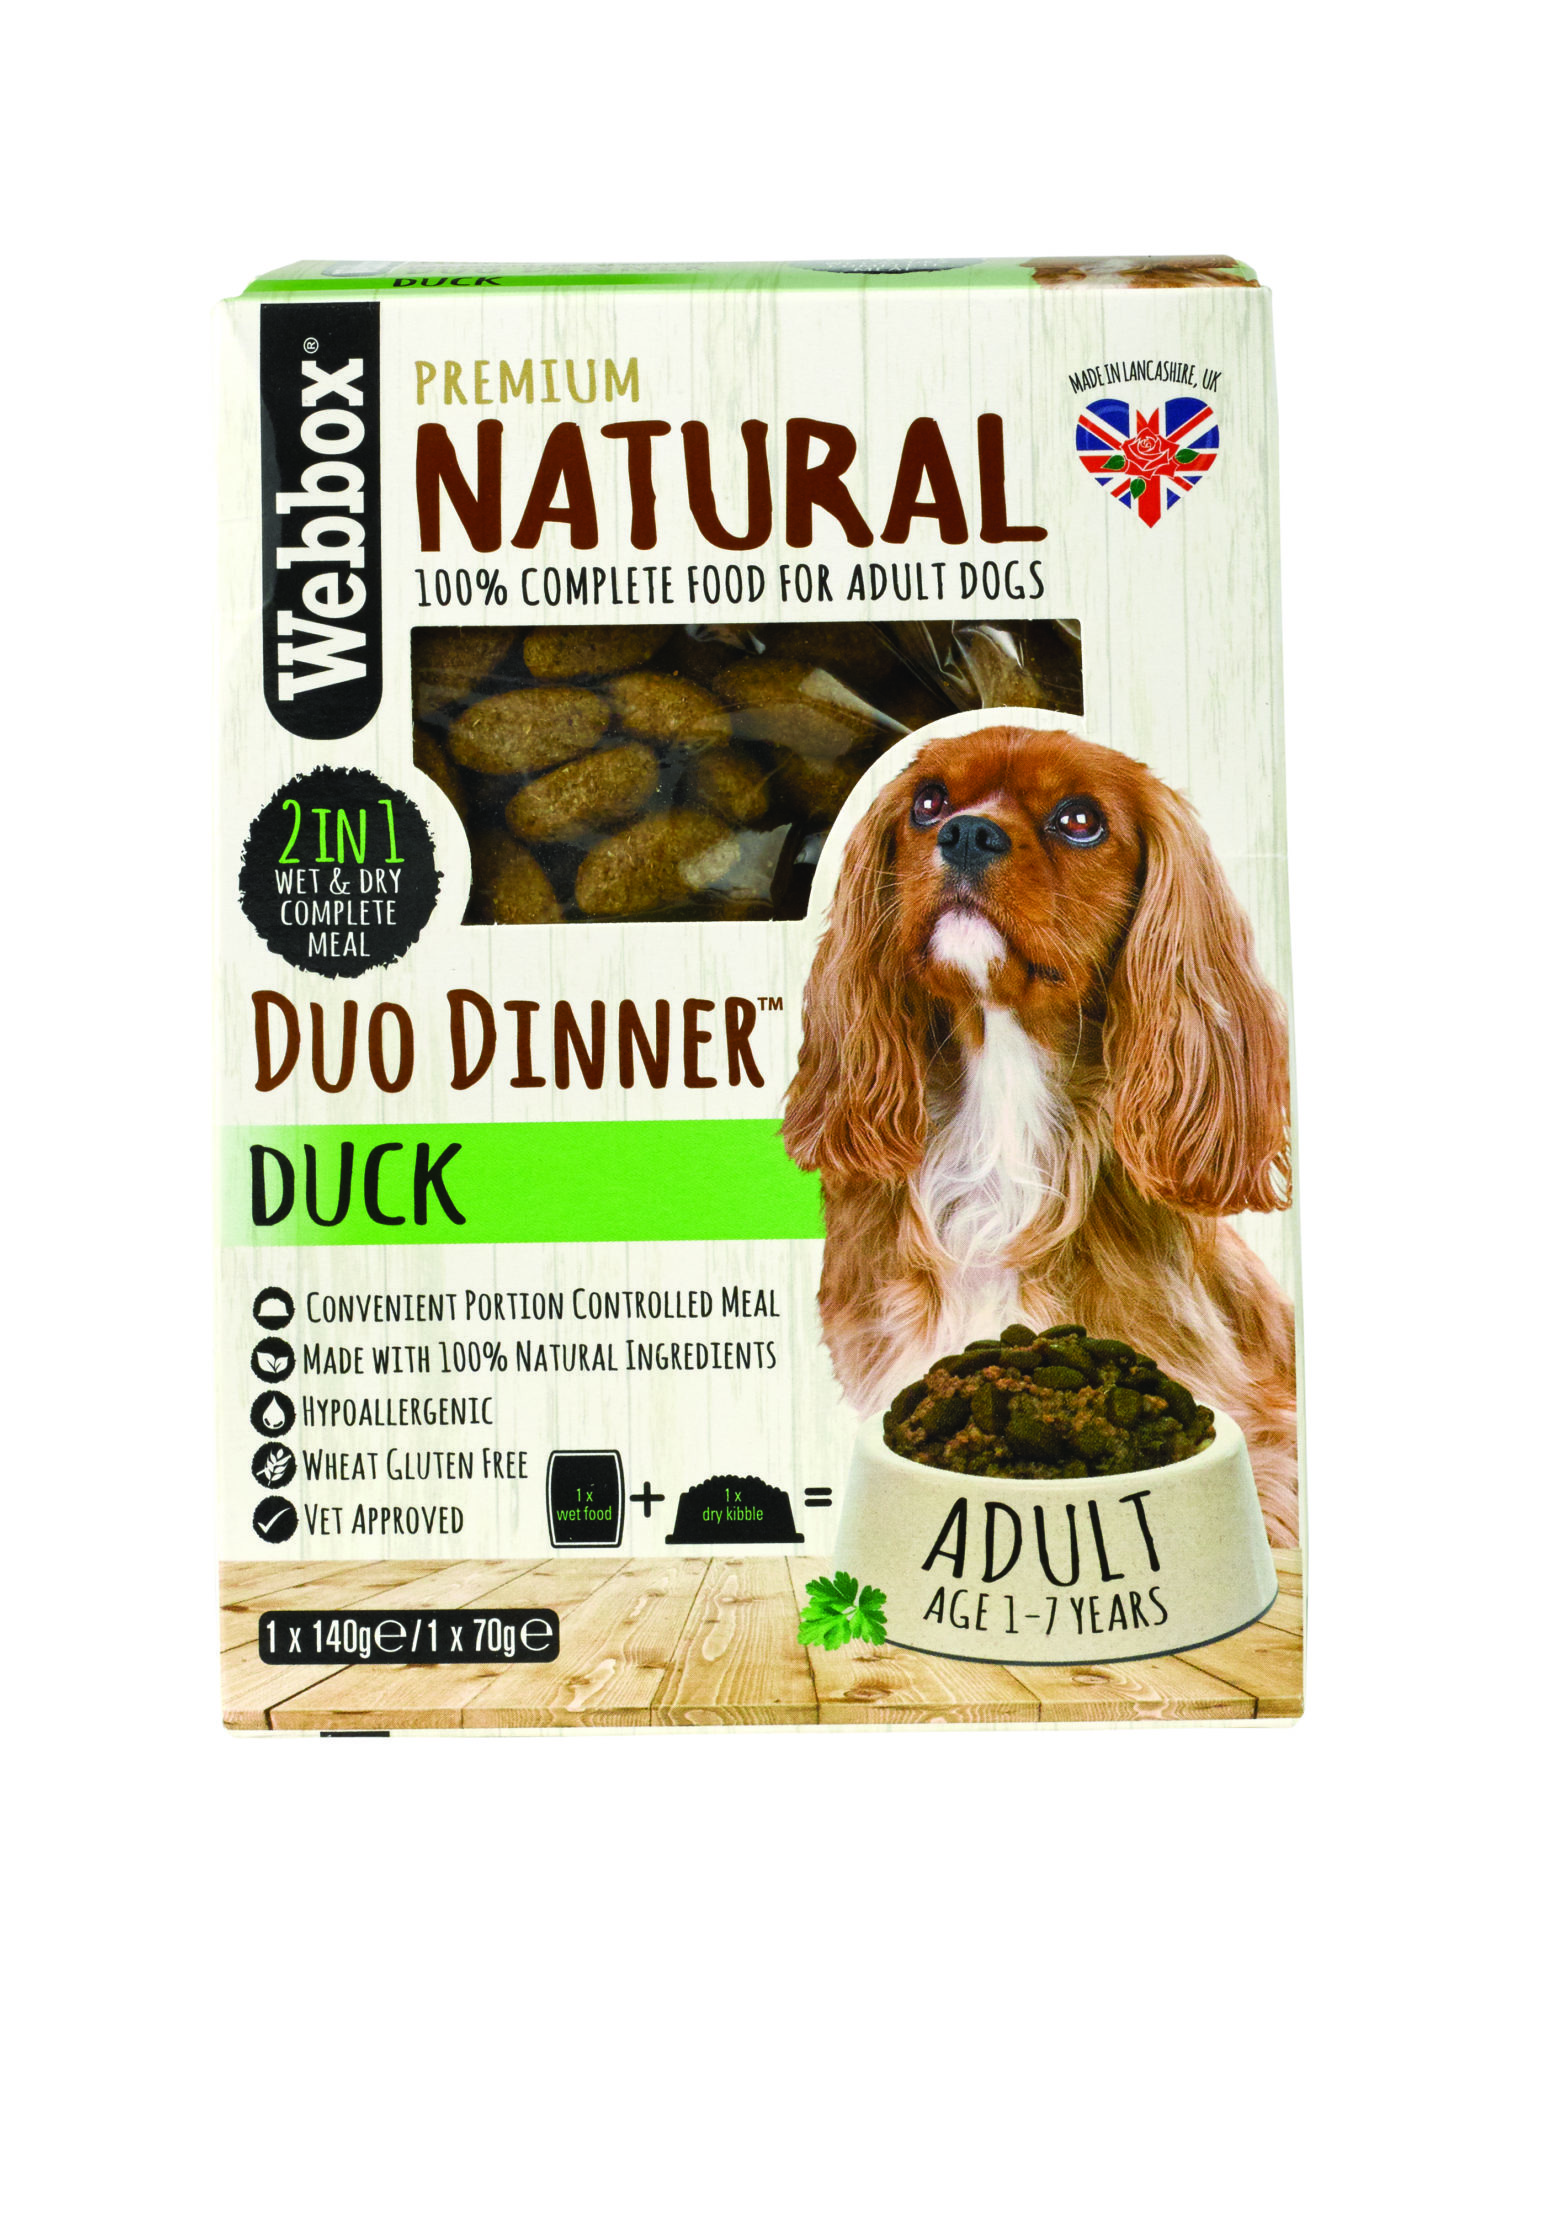 Webbox Naturals Duck Complete Dry & Wet Dog Food